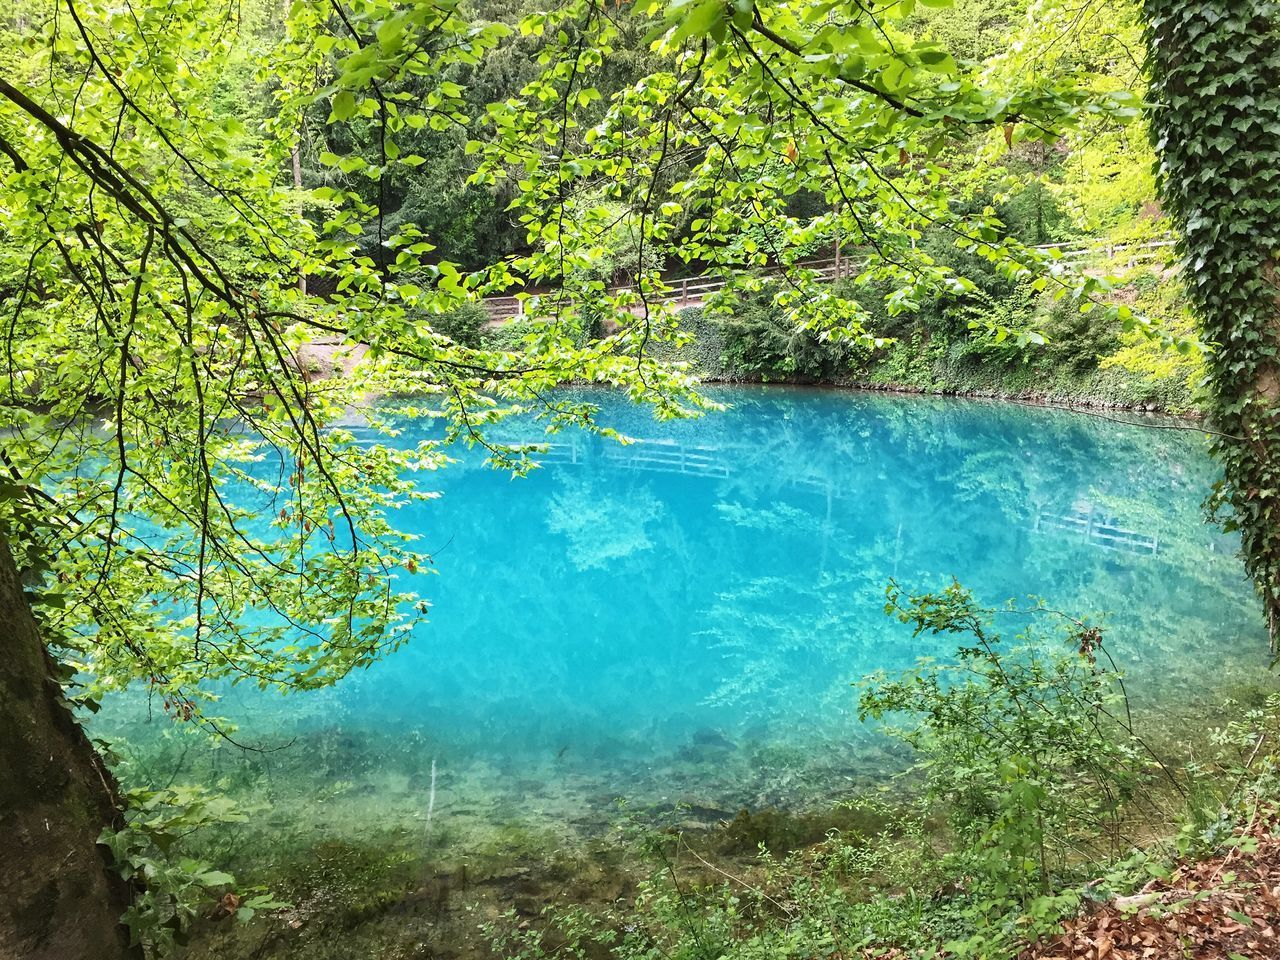 plant, tree, water, beauty in nature, tranquility, nature, day, growth, tranquil scene, scenics - nature, forest, no people, green color, land, lake, outdoors, idyllic, non-urban scene, branch, turquoise colored, rainforest